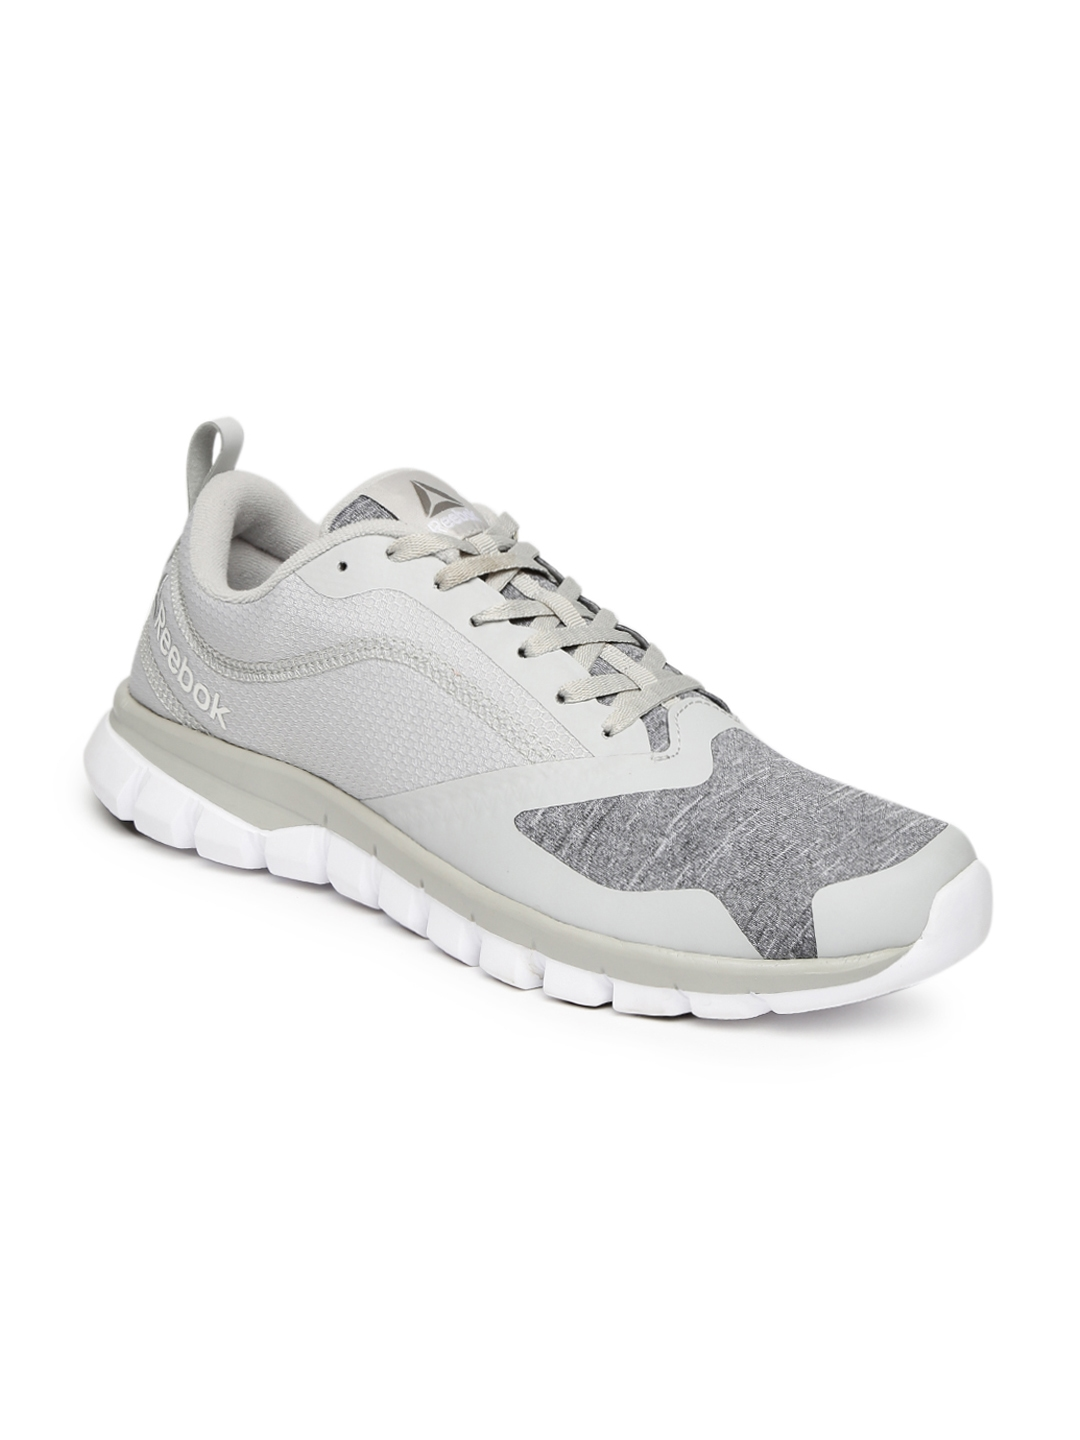 Buy Reebok Men Grey Sublite Authentic 4.0 Running Shoes - Sports ... df2e98540